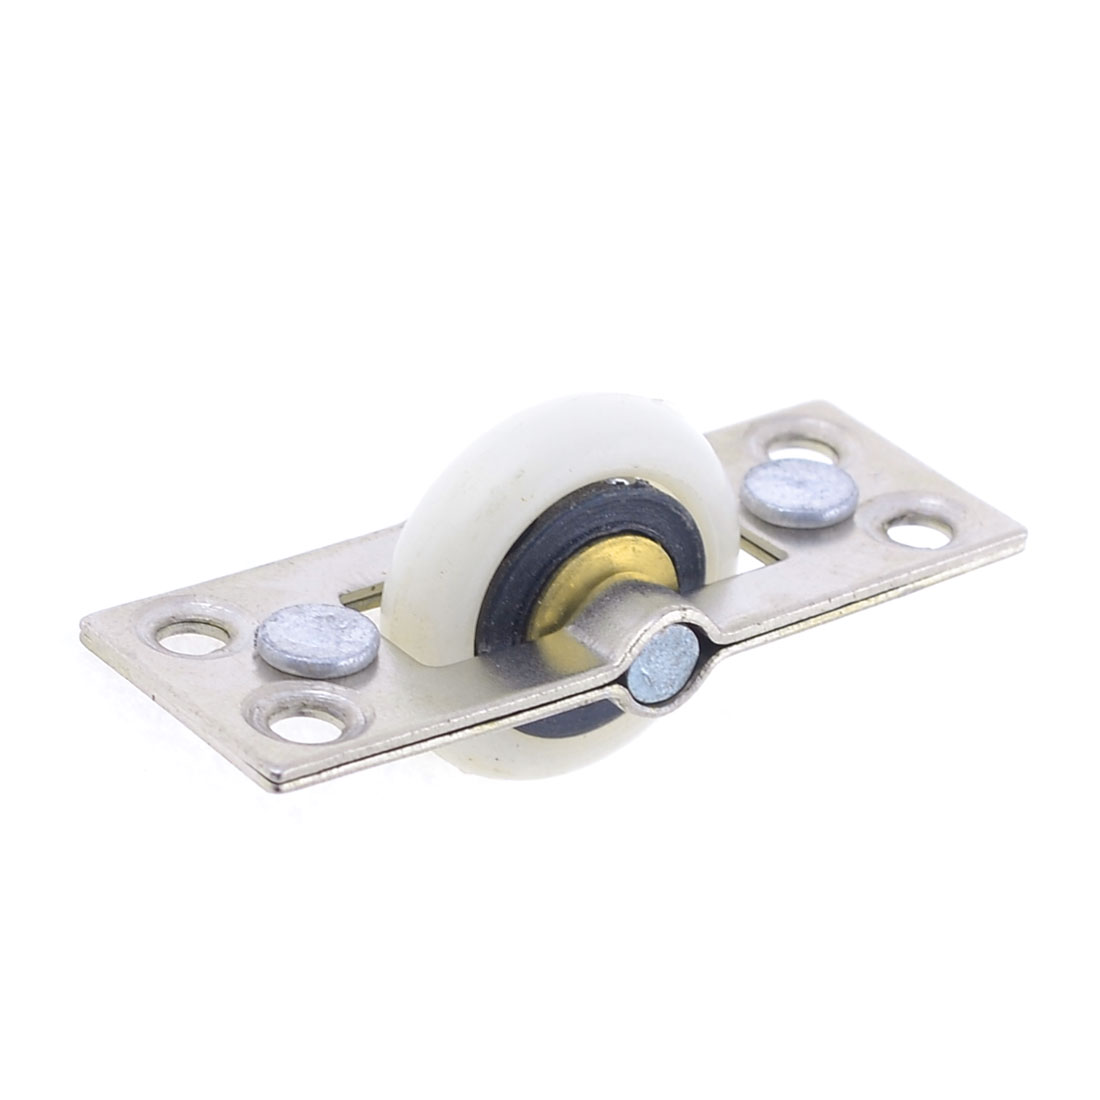 22mm Dia Plastic Single Roller Sliding Door Window Weight Pulley